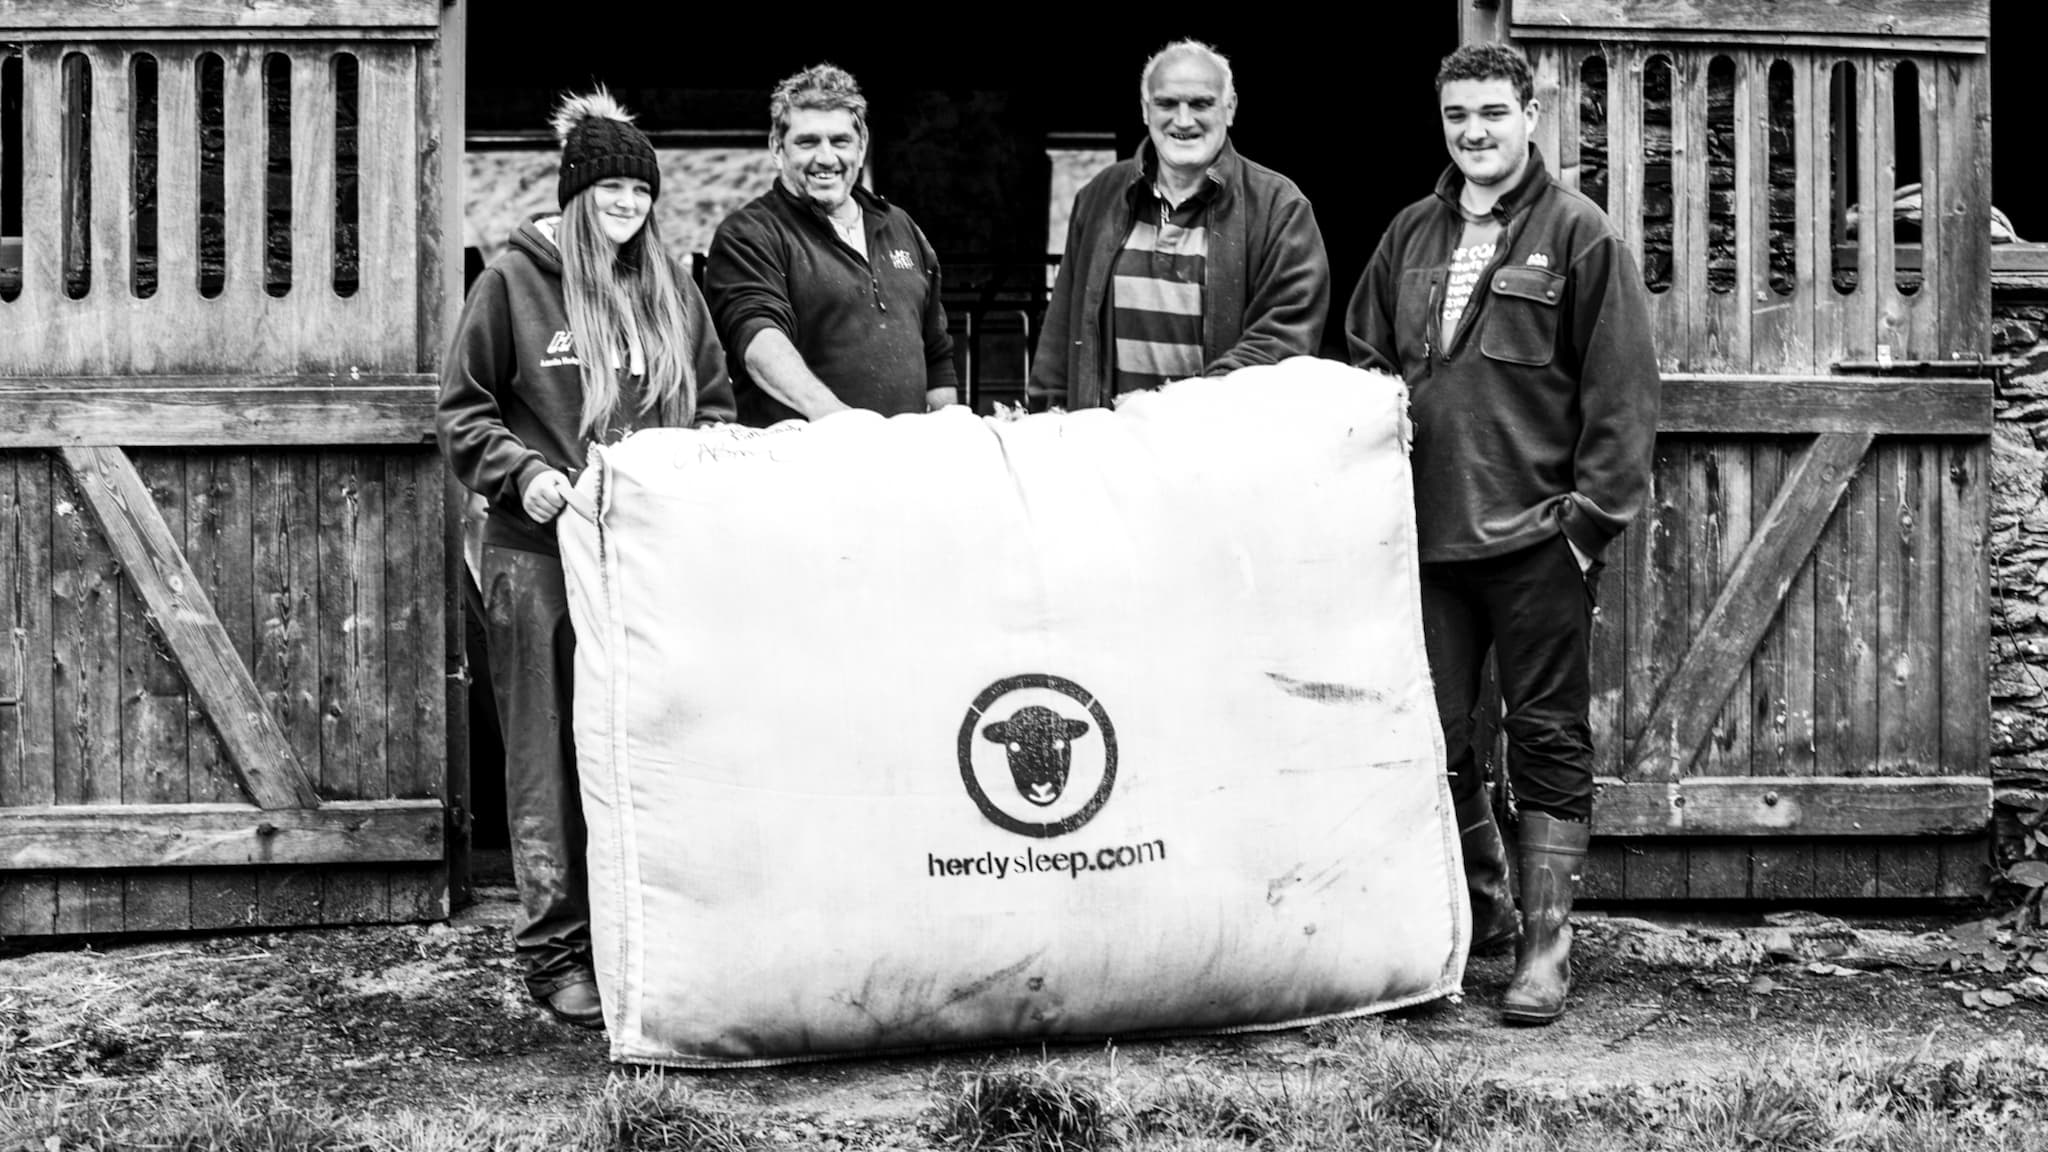 A wool mattress and natural fibres support the farmers